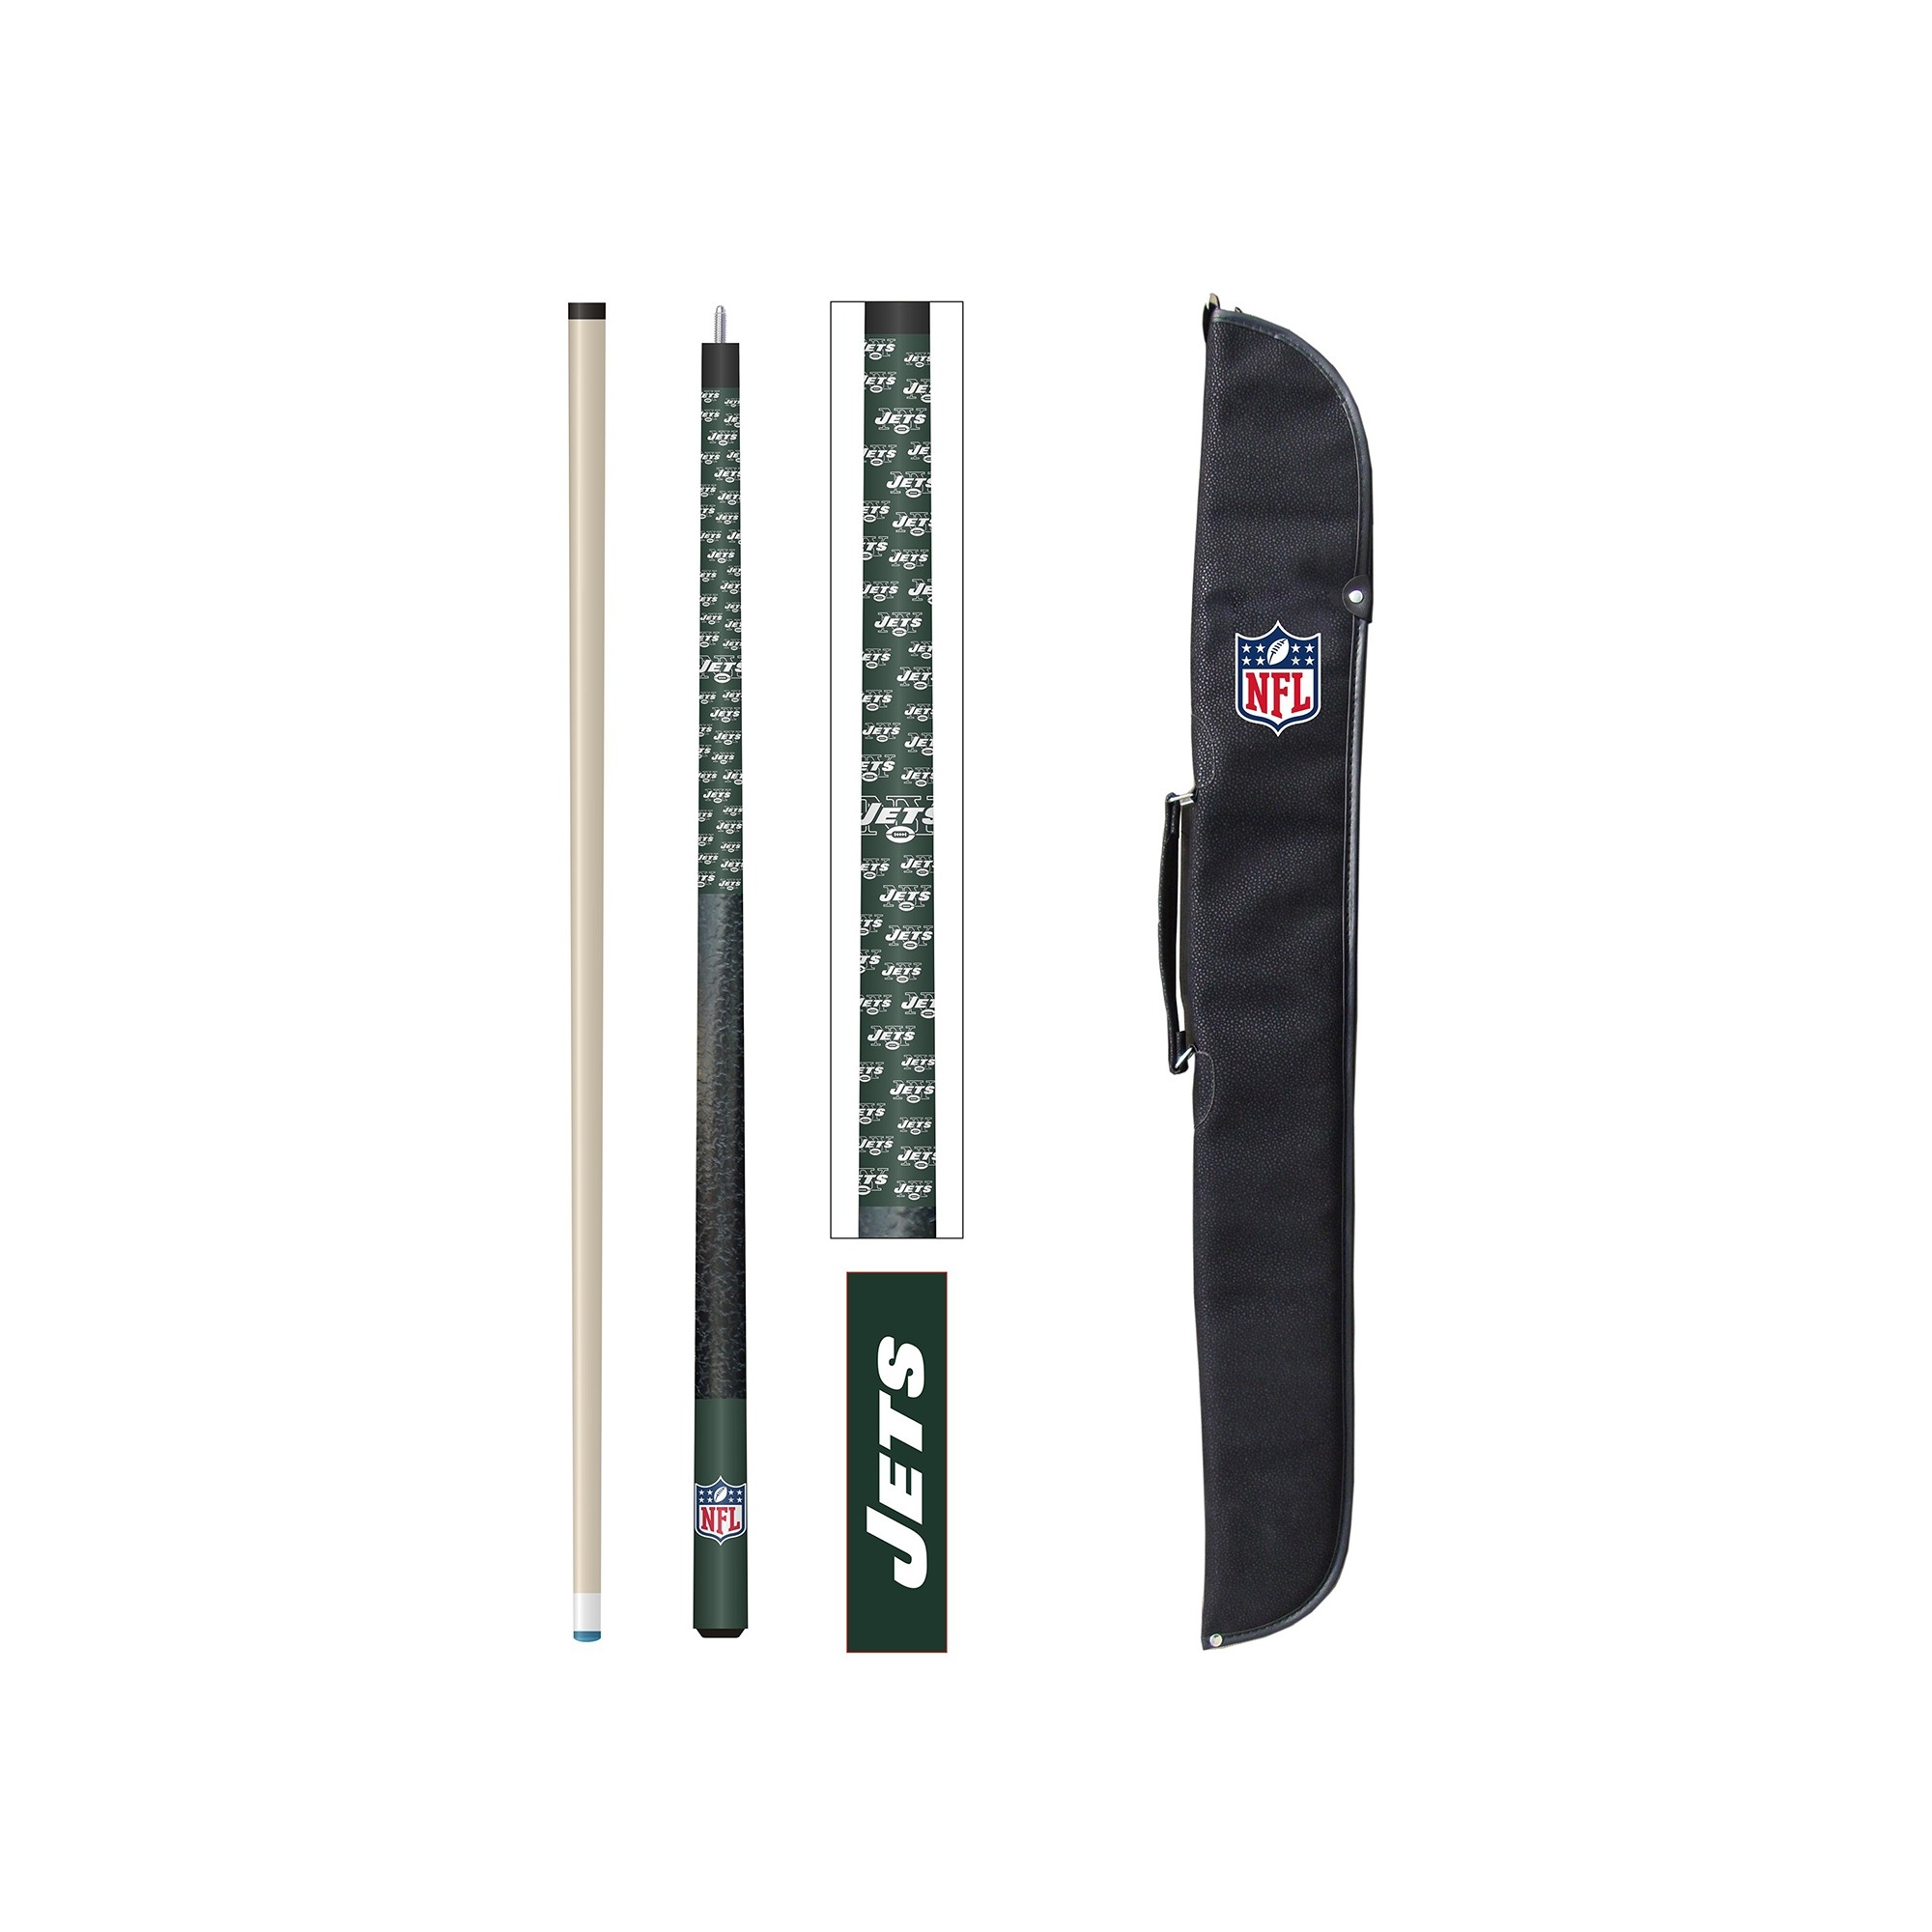 Football Nfl Football New York Jets Cases - 72-1012 - New York Jets Cue And Case Set 72-1012